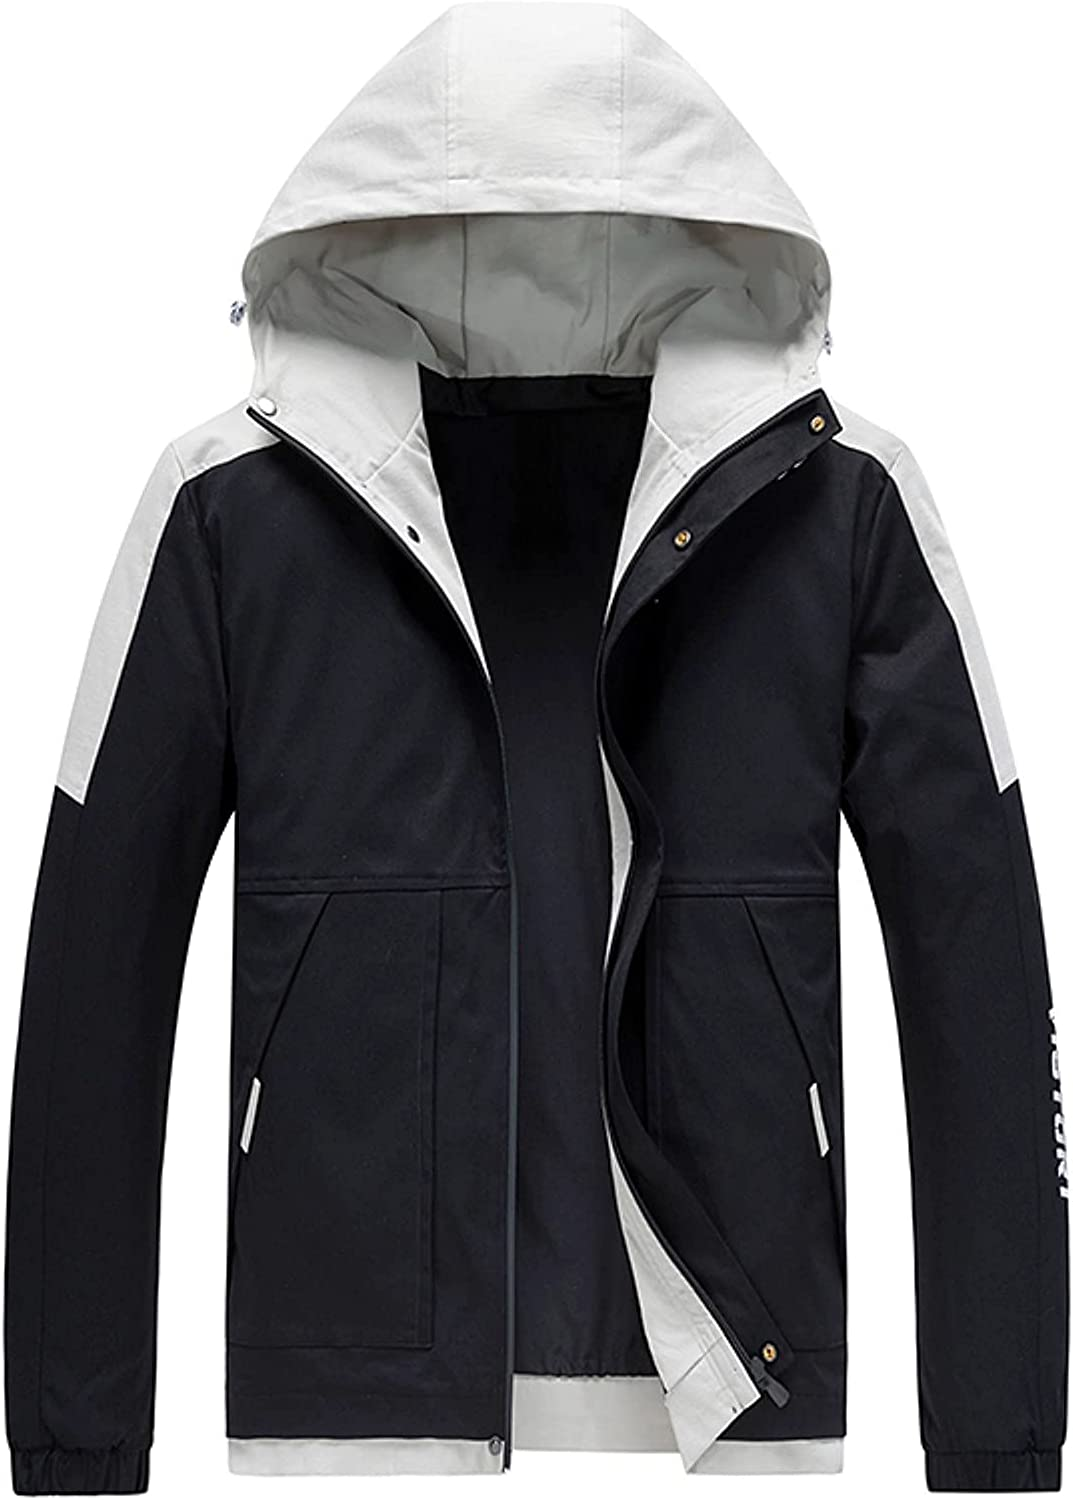 Tops for Men Fleece Pocket Zipper Color Solid Fly Coat Max 55% OFF Hooded Fl Spring new work one after another